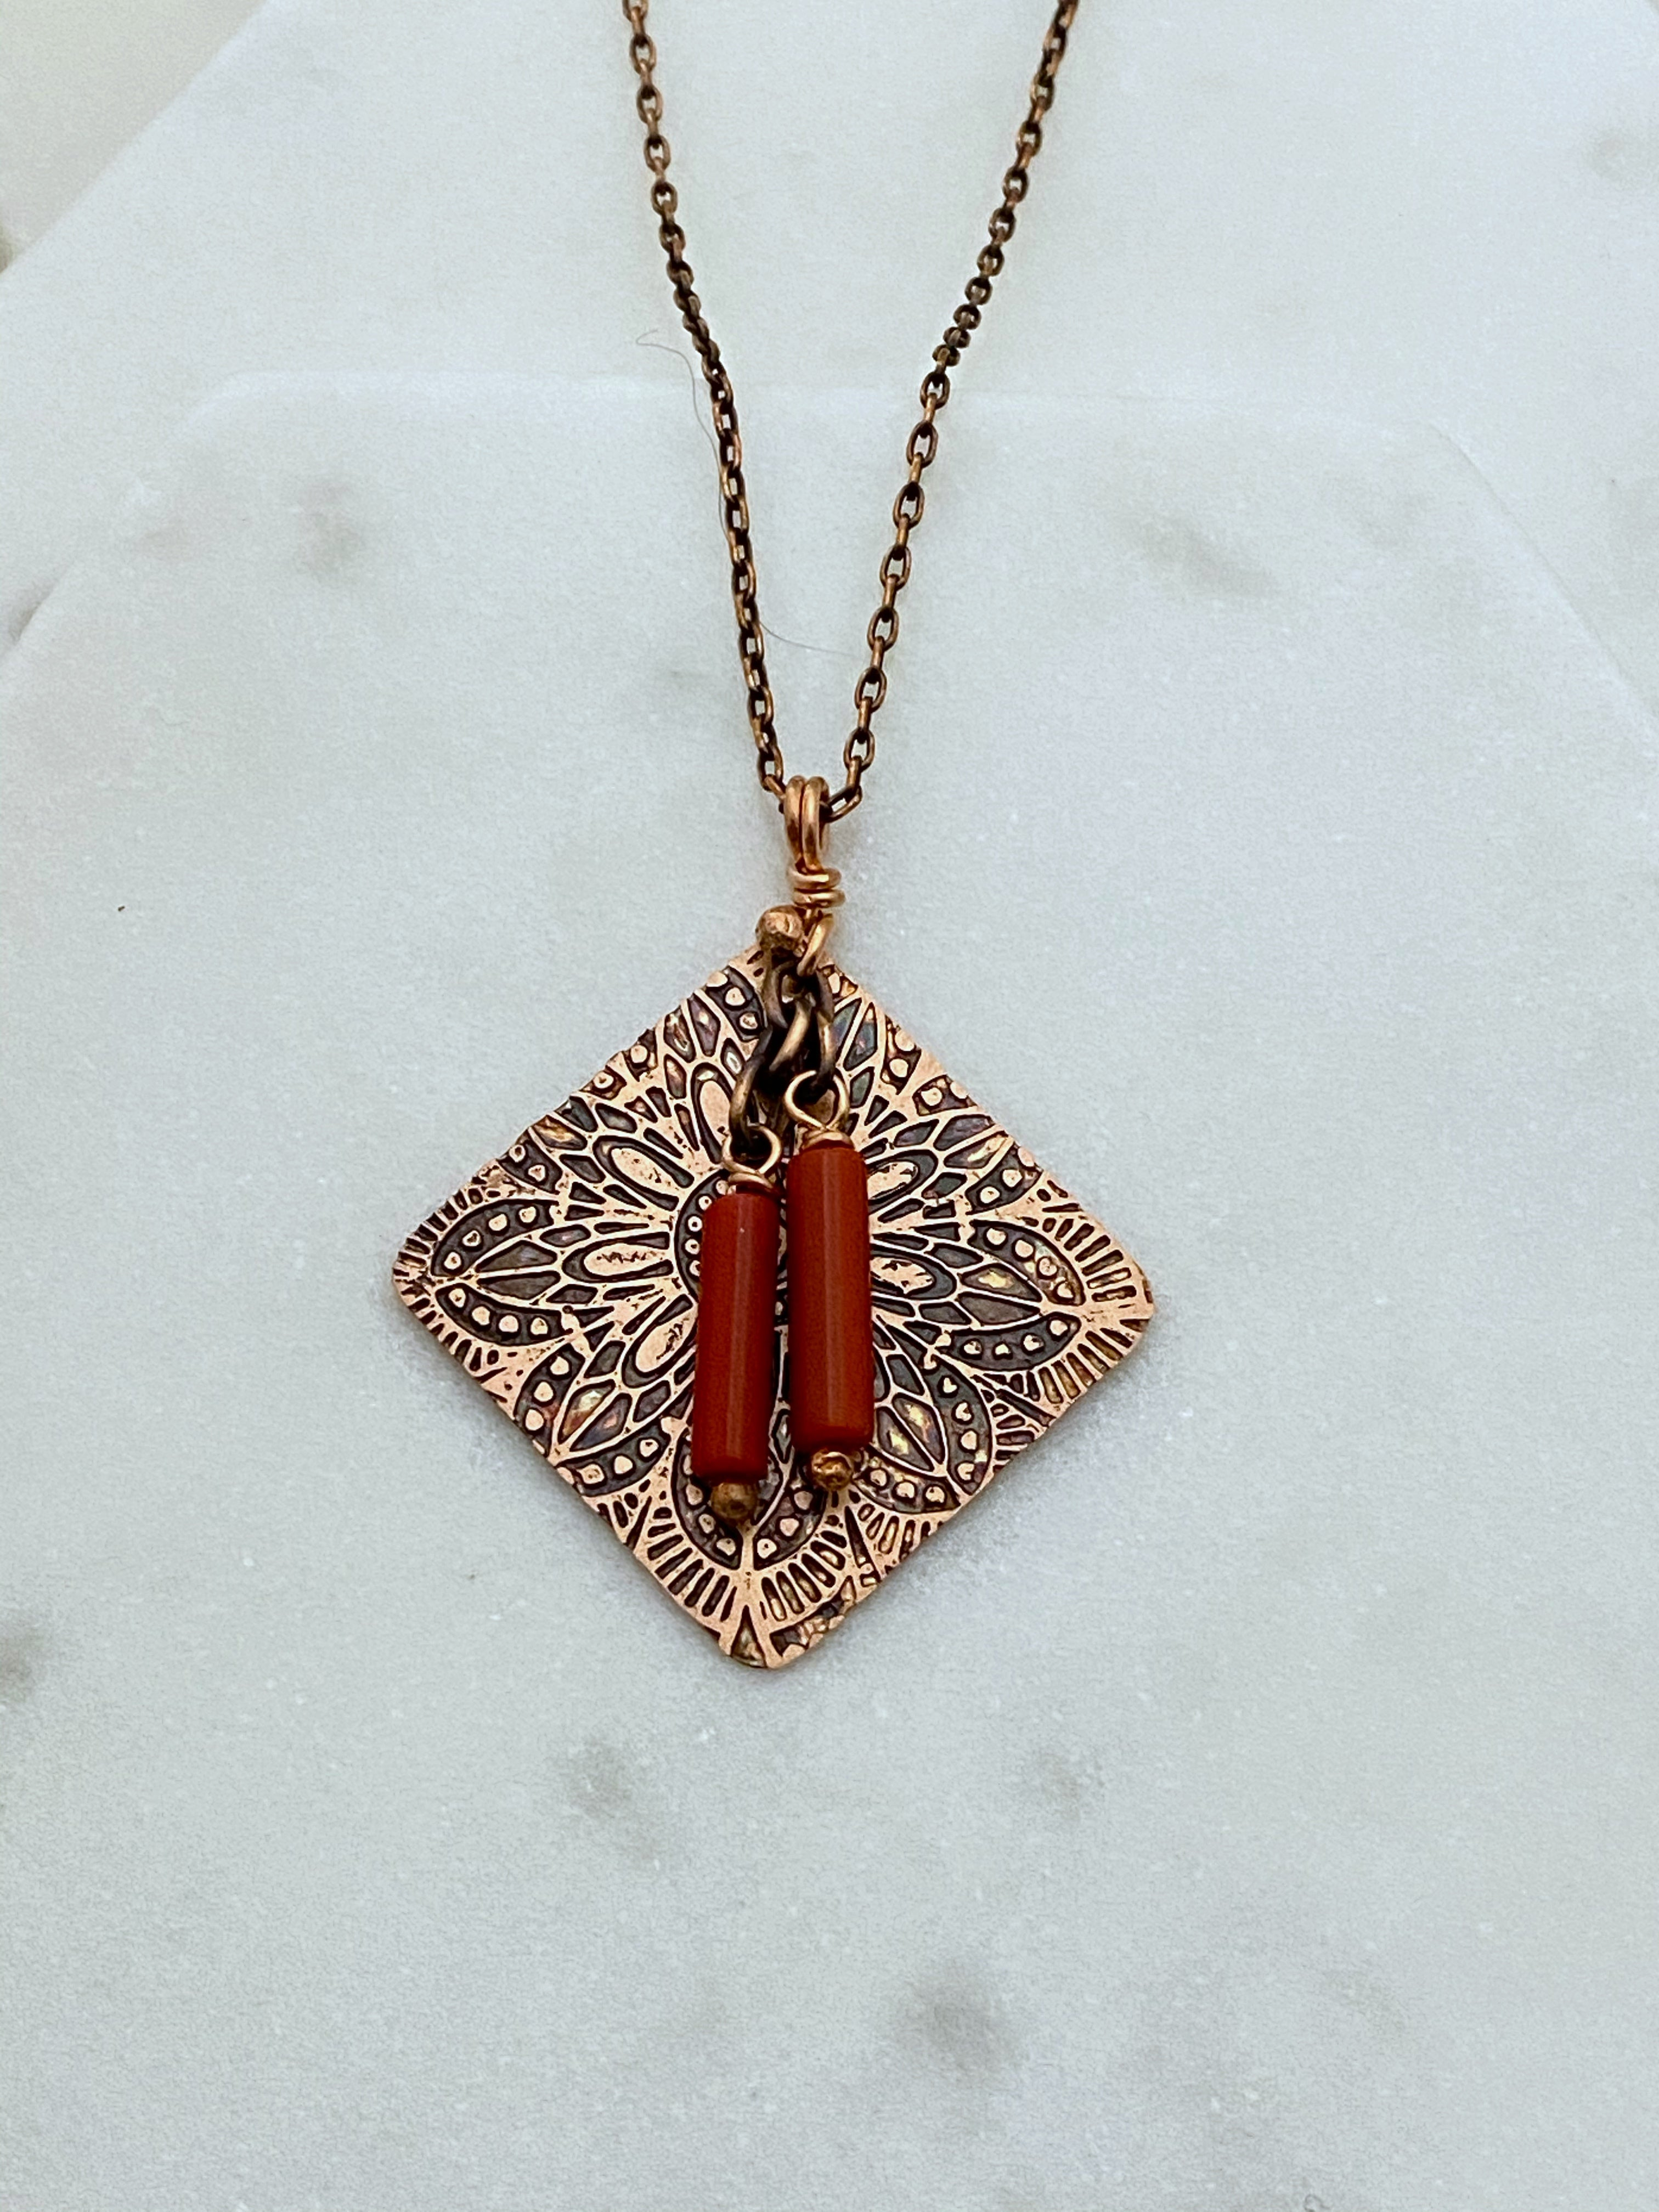 Coral and copper necklace